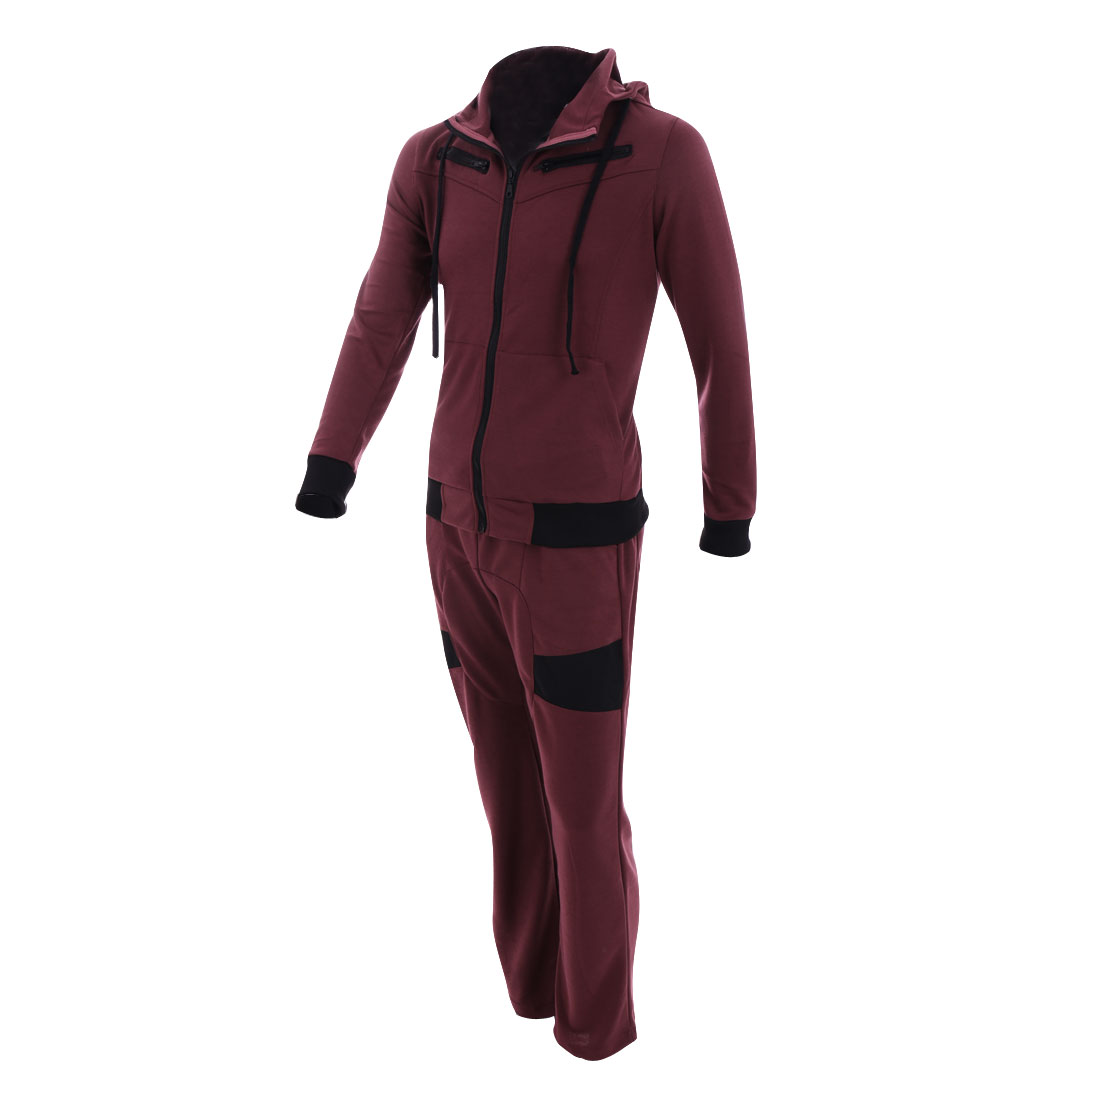 Women Hooded Long Sleeve Hoodie & Drawstring Waist Pants Burgundy M